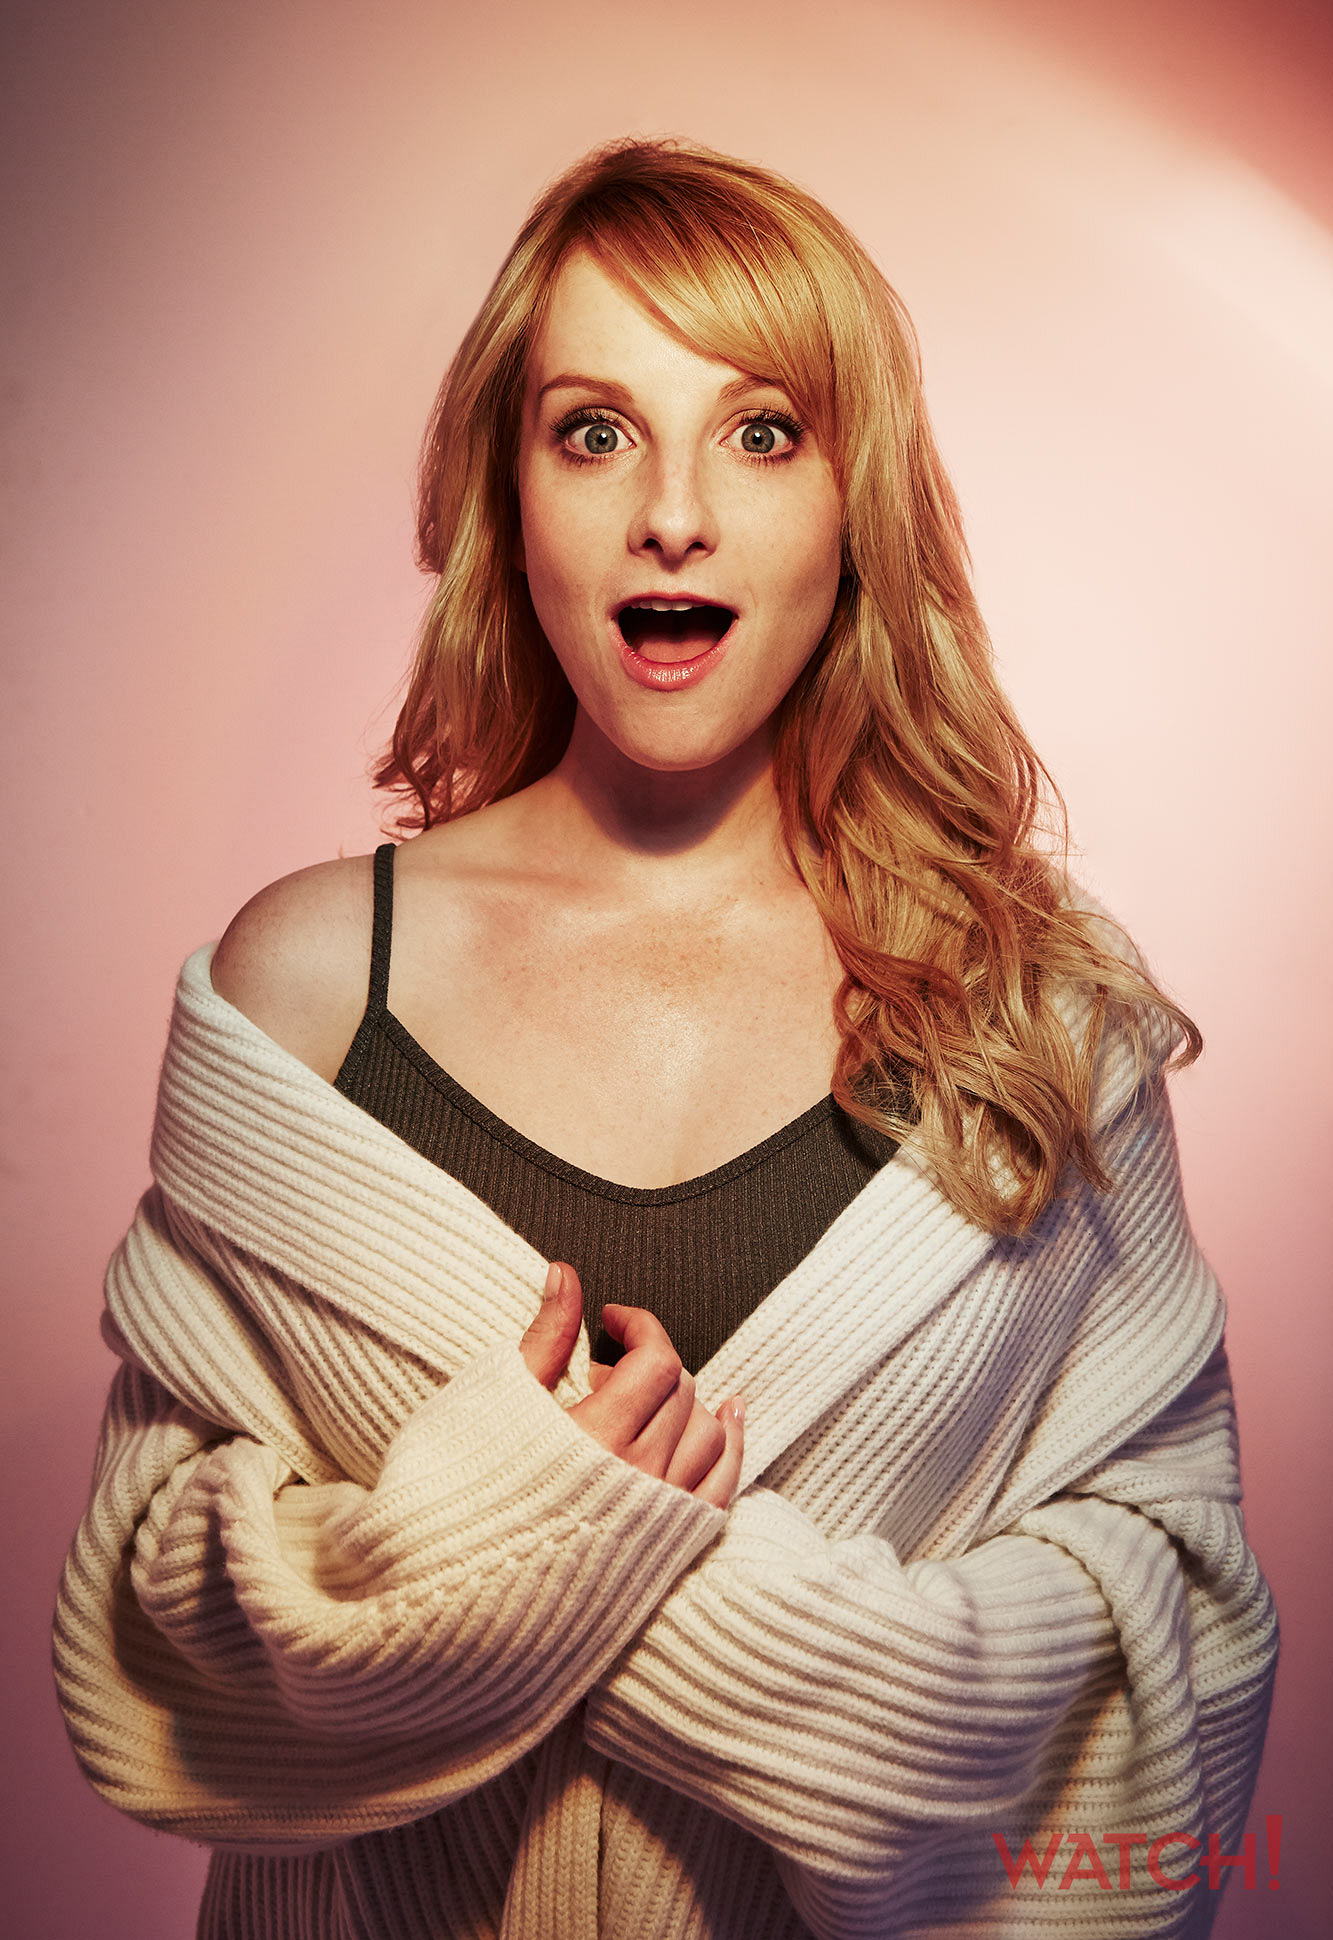 Young Melissa Rauch nudes (69 photos), Pussy